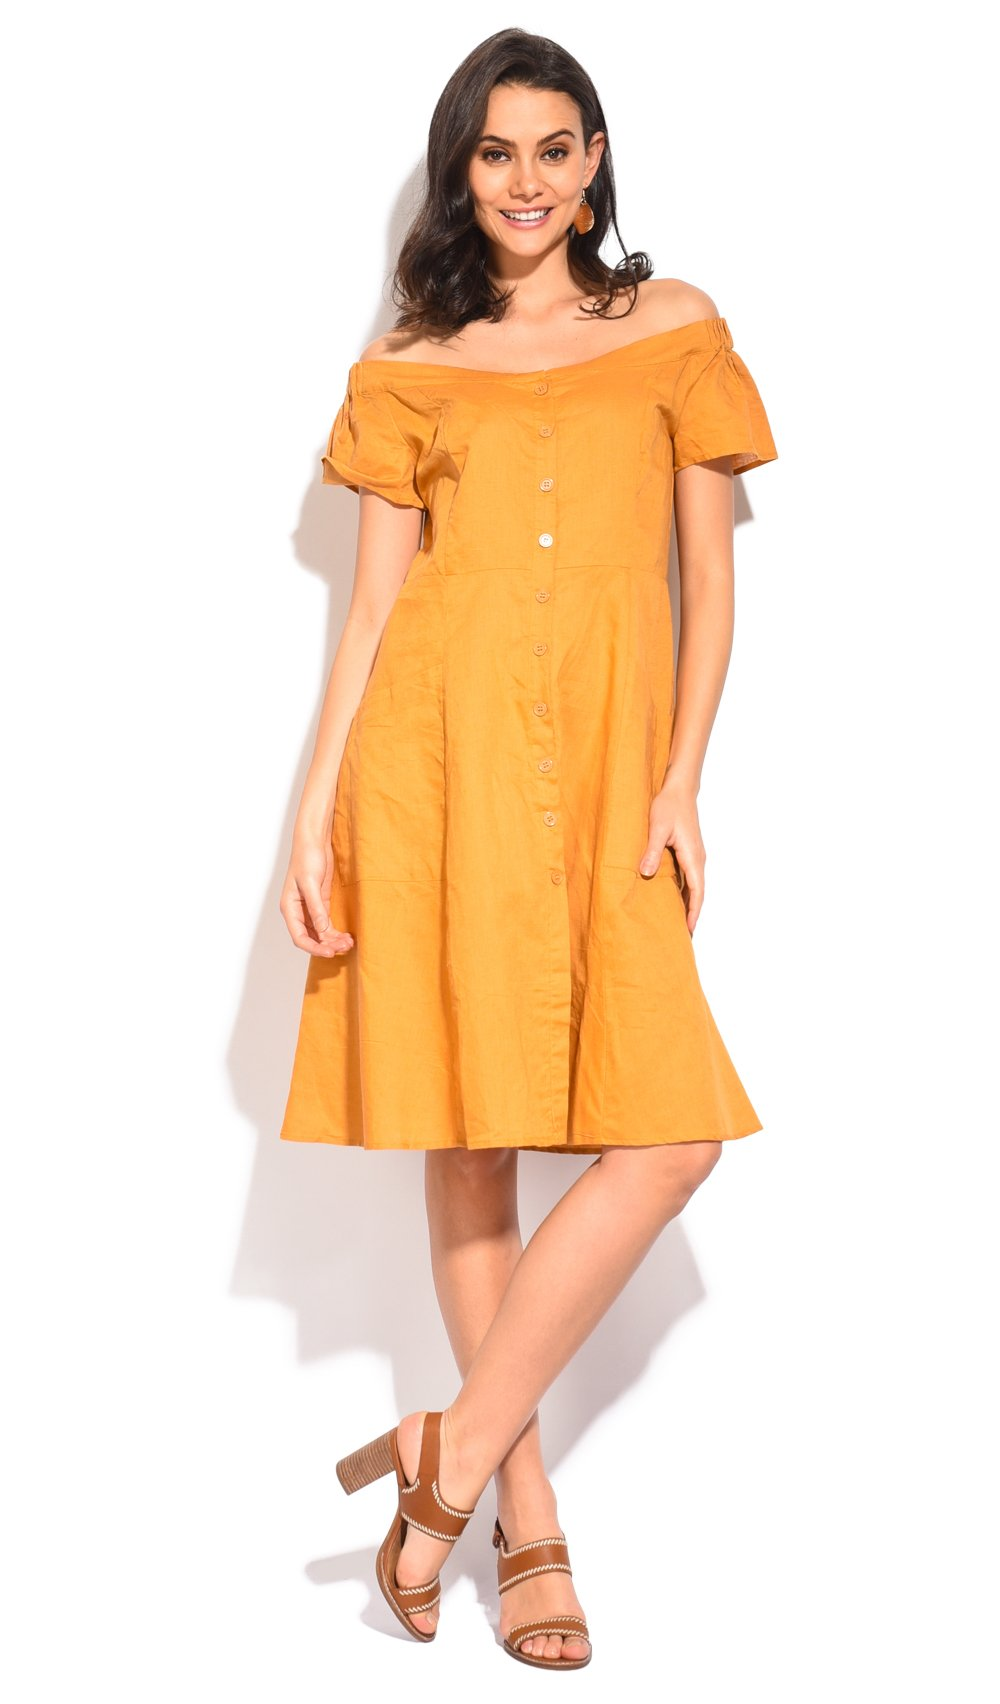 MID-LENGHT BUTTONNED BLOUSE DRESS WITH BOAT COLLAR